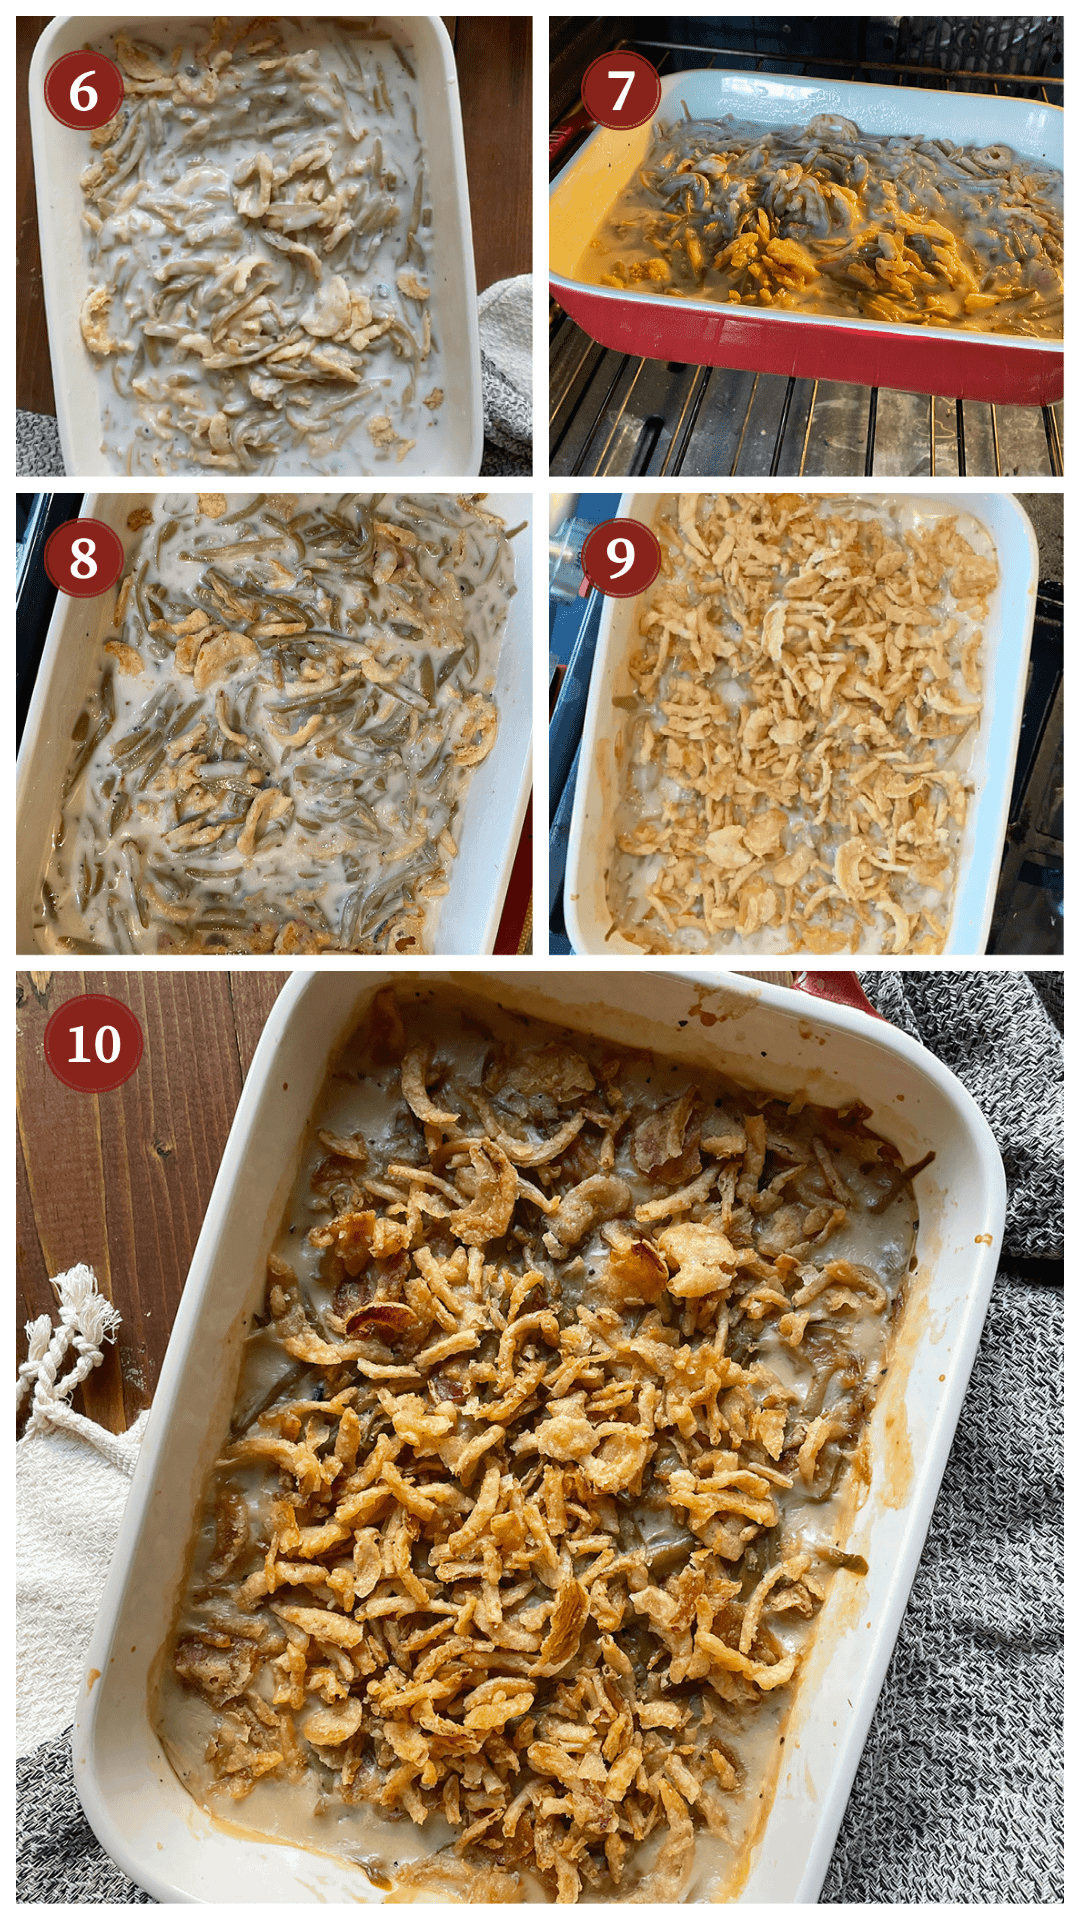 A process collage of images showing how to make green bean casserole, steps 6 - 10.